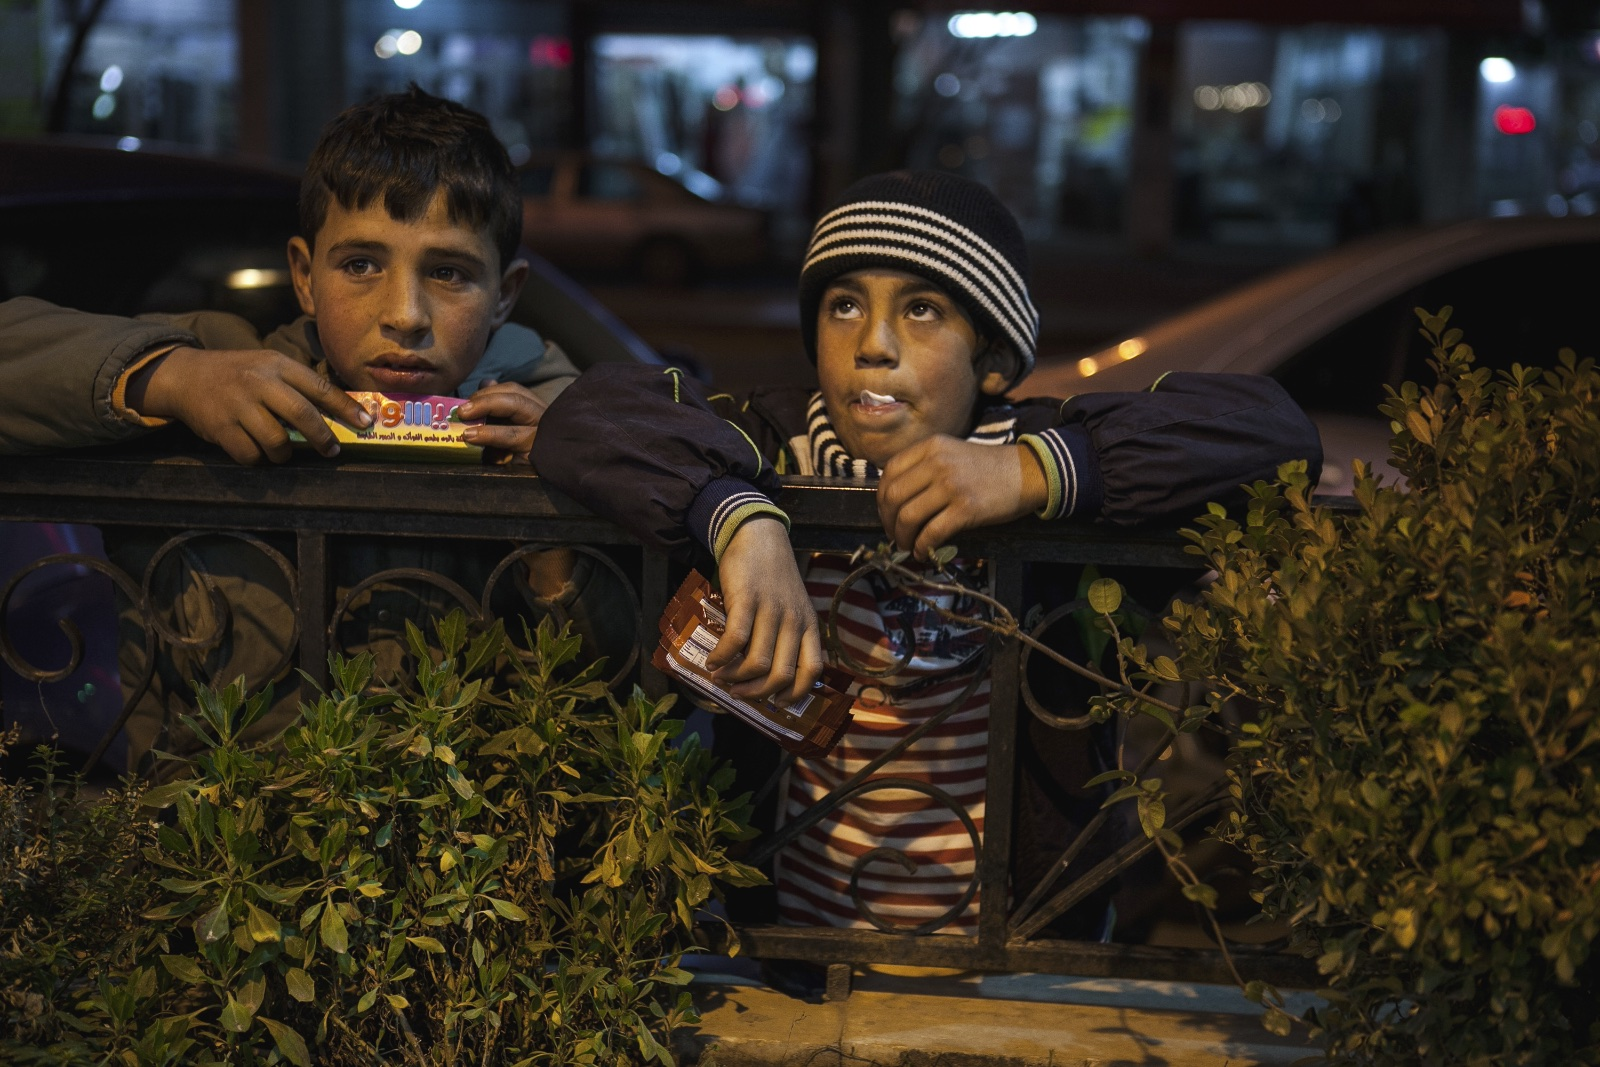 Mahmut (right), 8, a Syrian refugee from Homs, and another child waited for people to come out of a restaurant in the Bekaa Valley where they sell biscuits. (Christopher Lee/GroundTruth)